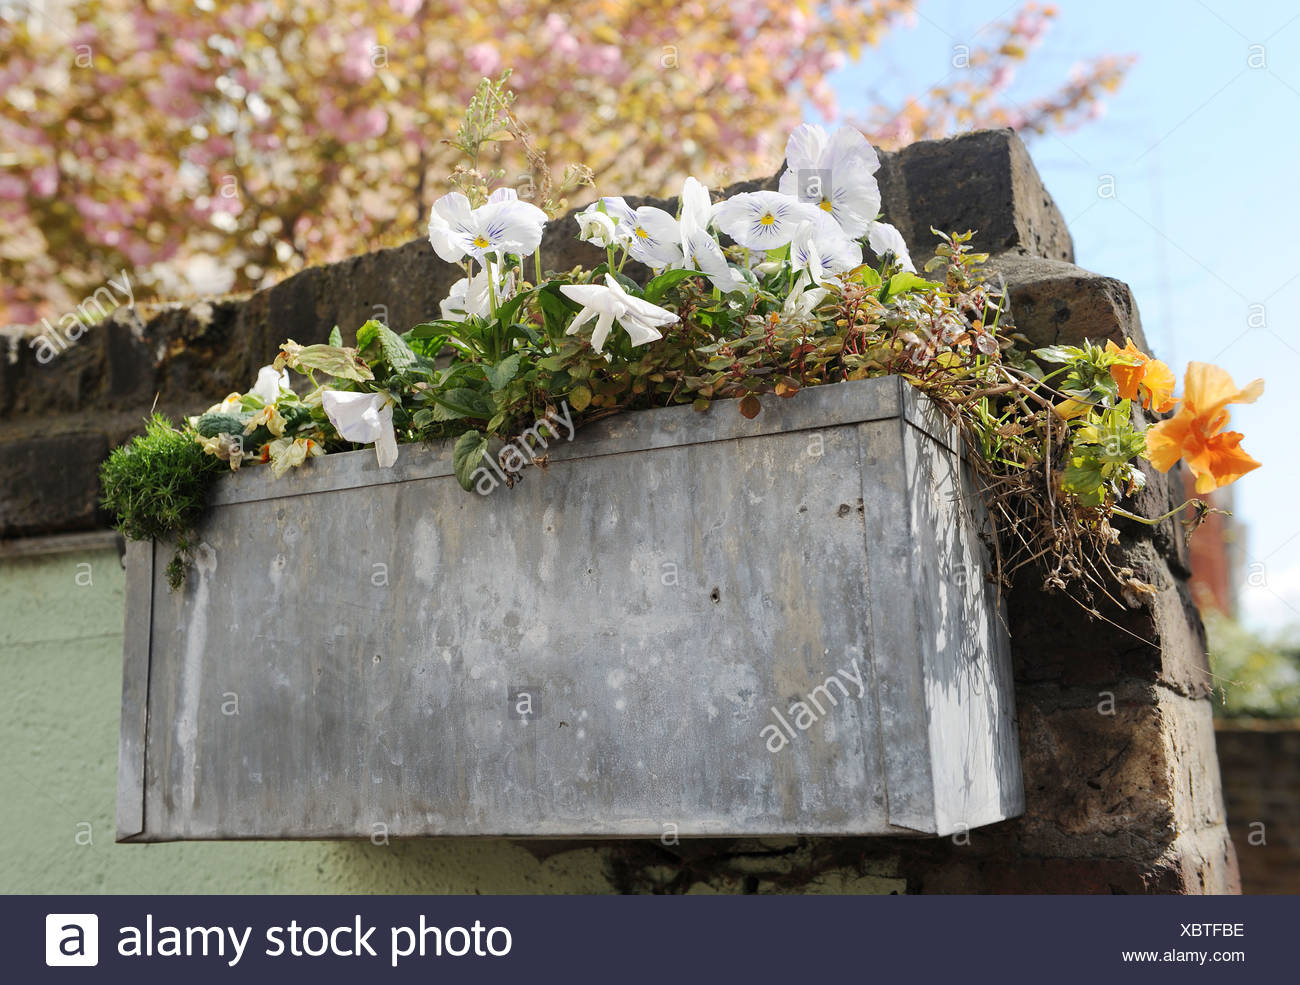 White pansy flowers in metal flower box on brick wall - Stock Image